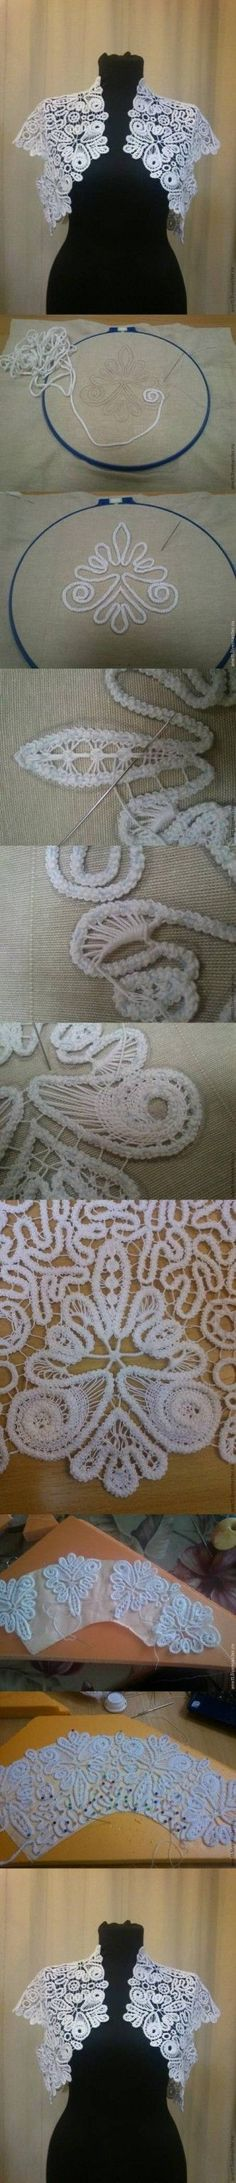 DIY Romanian Lace Pictures, Photos, and Images for Facebook, Tumblr, Pinterest, and Twitter